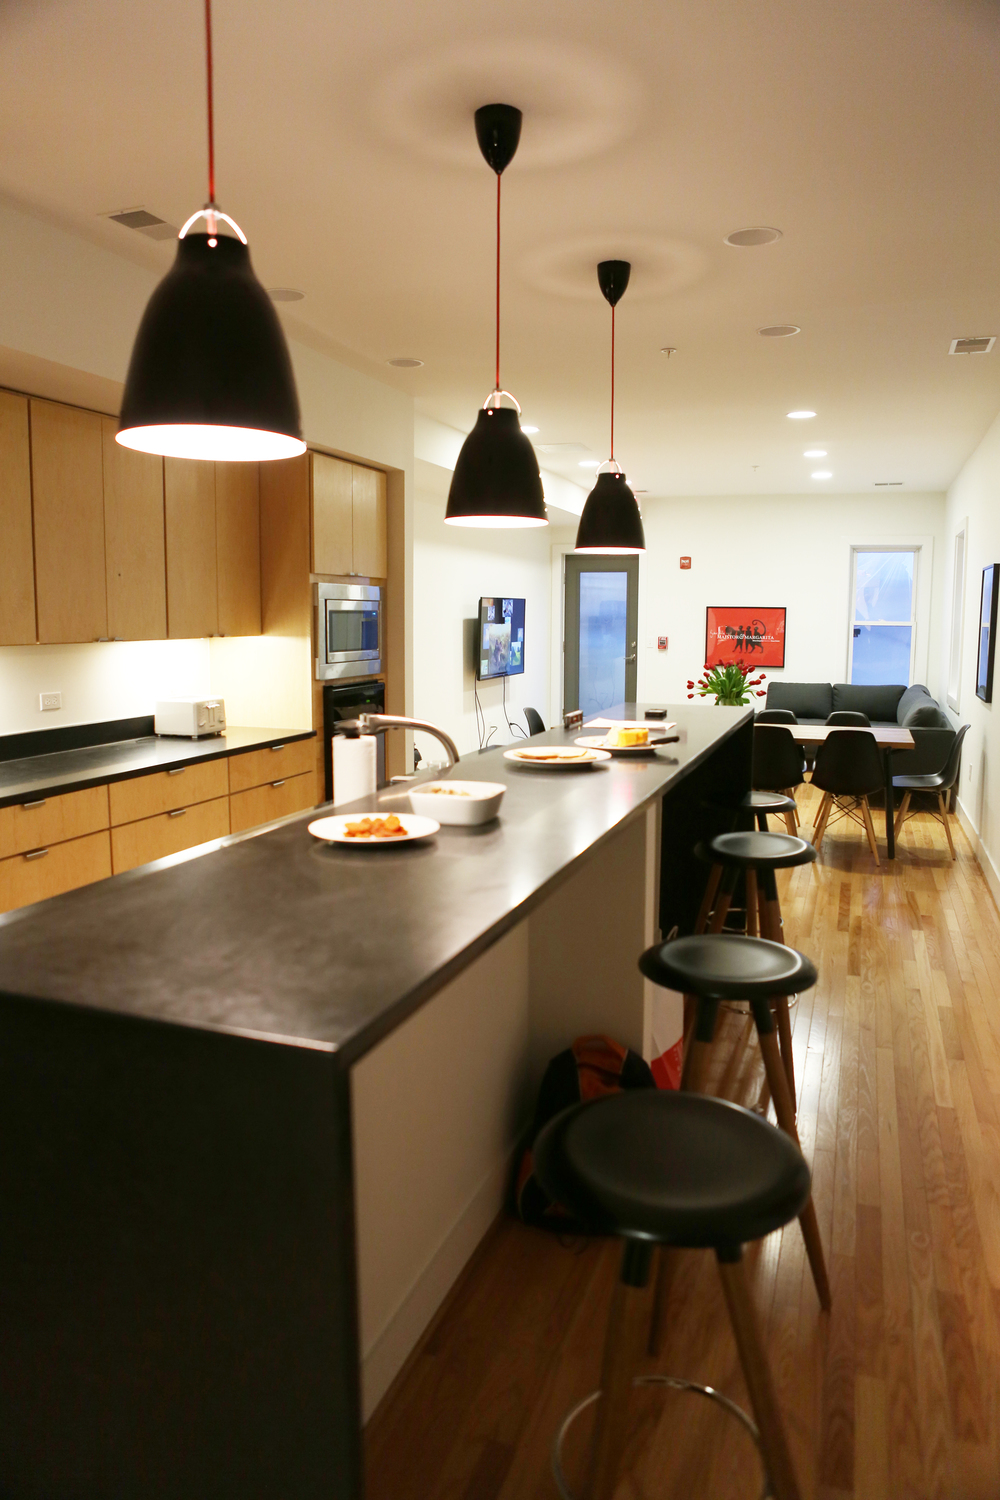 View of shared kitchen and breakfast bar